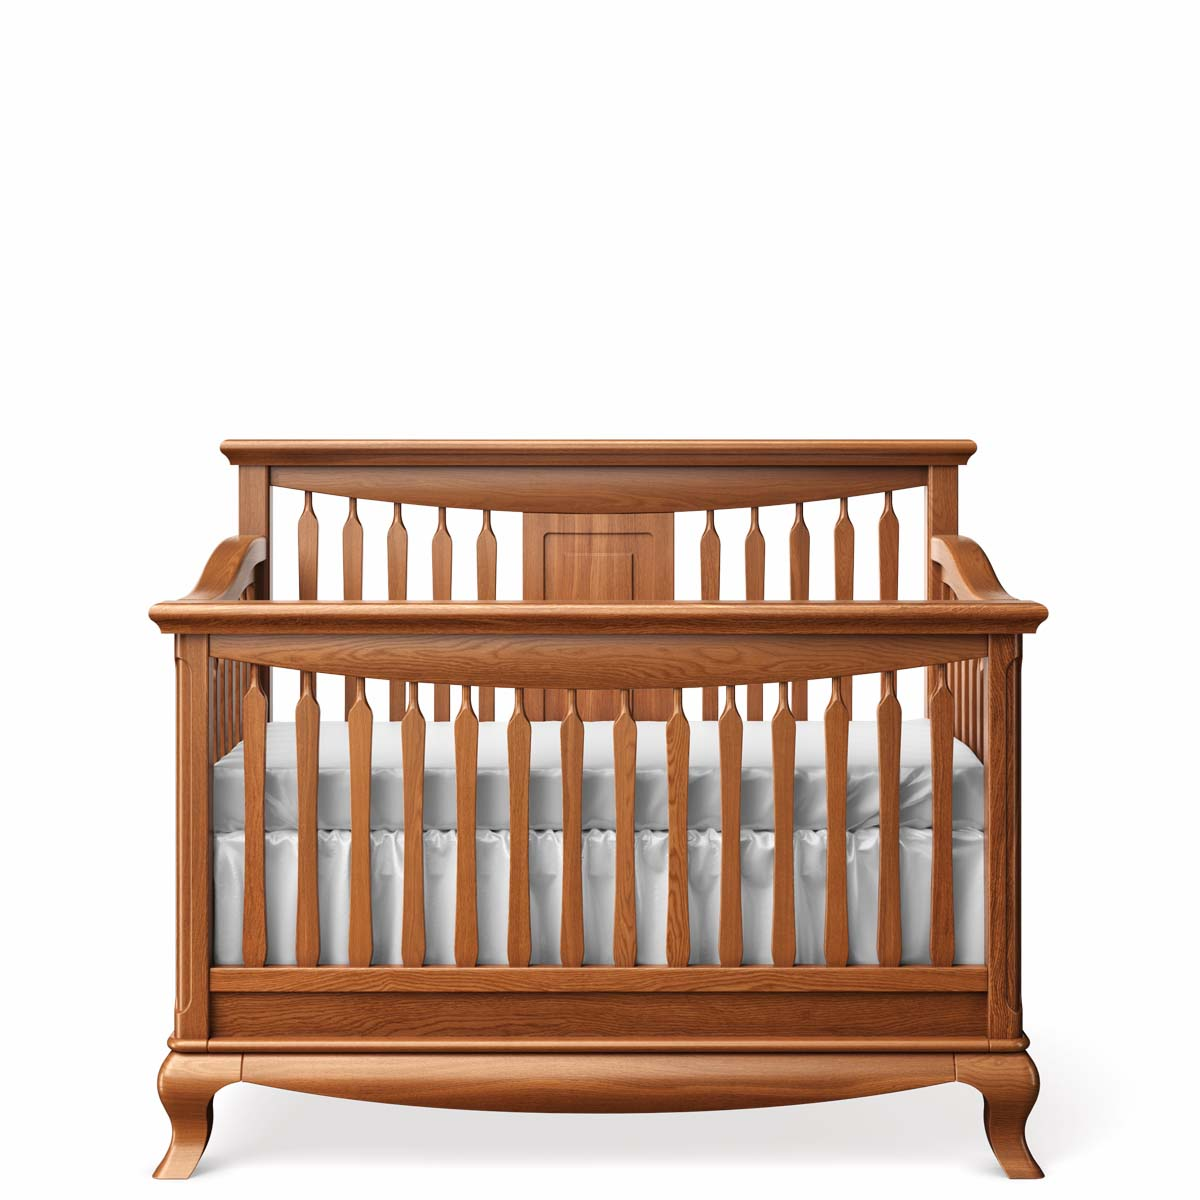 Romina Antonio Convertible Crib / Open Back